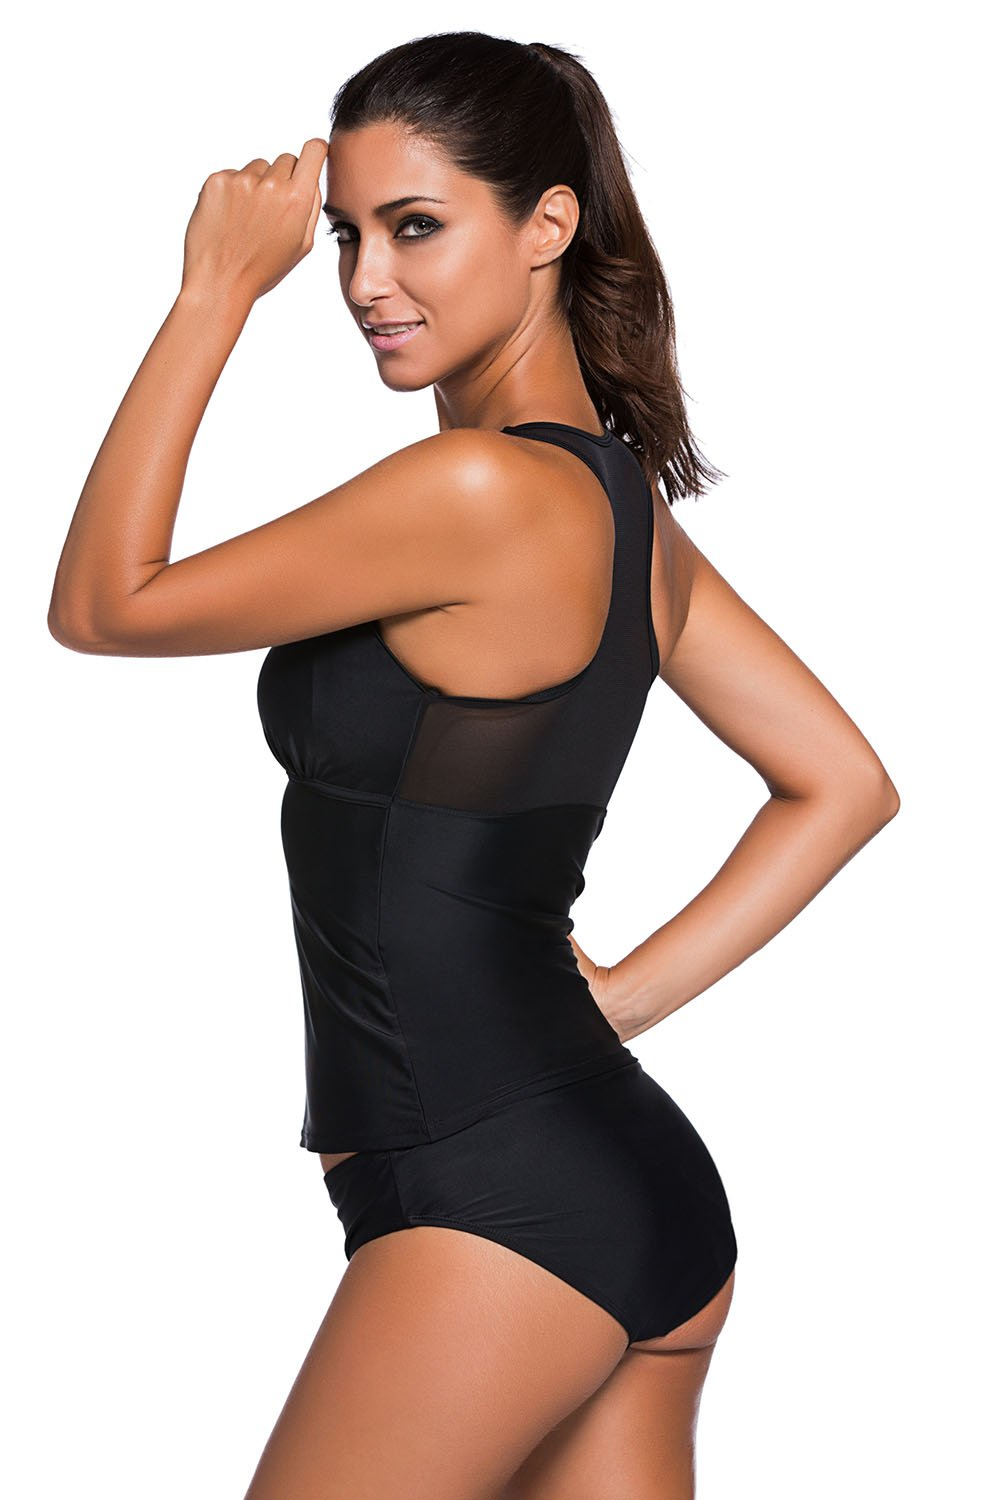 27371d5deb Mesh insert tankini swim top for sporty and fashionable look. Matching swim  bottom with full-coverage rear for comfortable fit